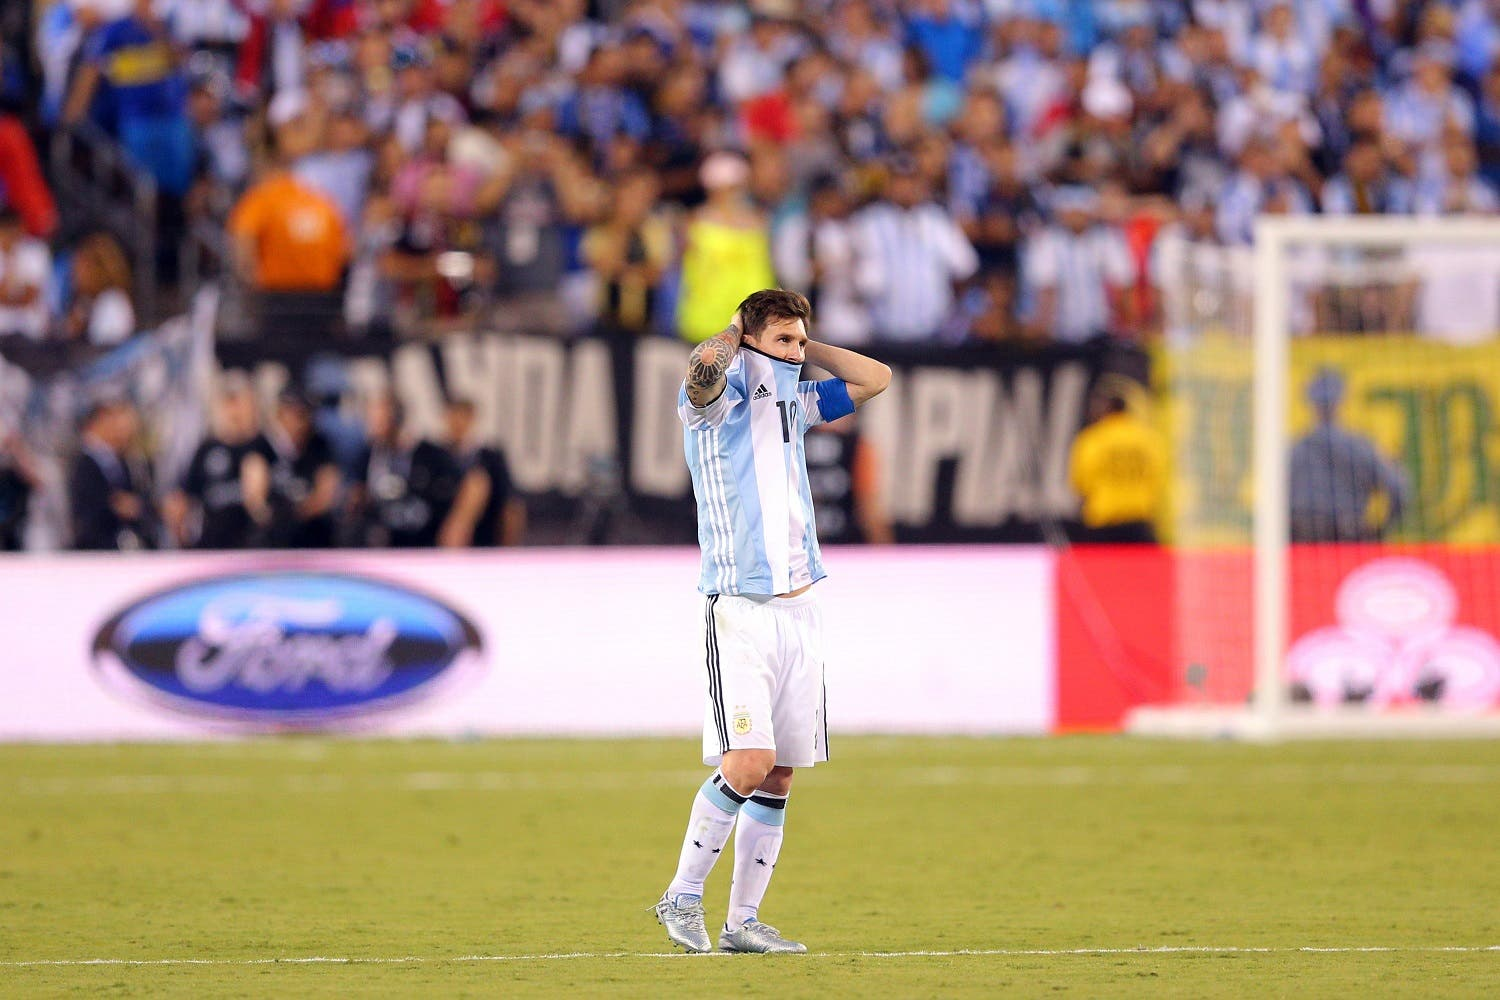 Argentina midfielder Lionel Messi (10) reacts during penalty kicks of the championship match of the 2016 Copa America Centenario soccer tournament against Chile at MetLife Stadium. (USA TODAY Sports)